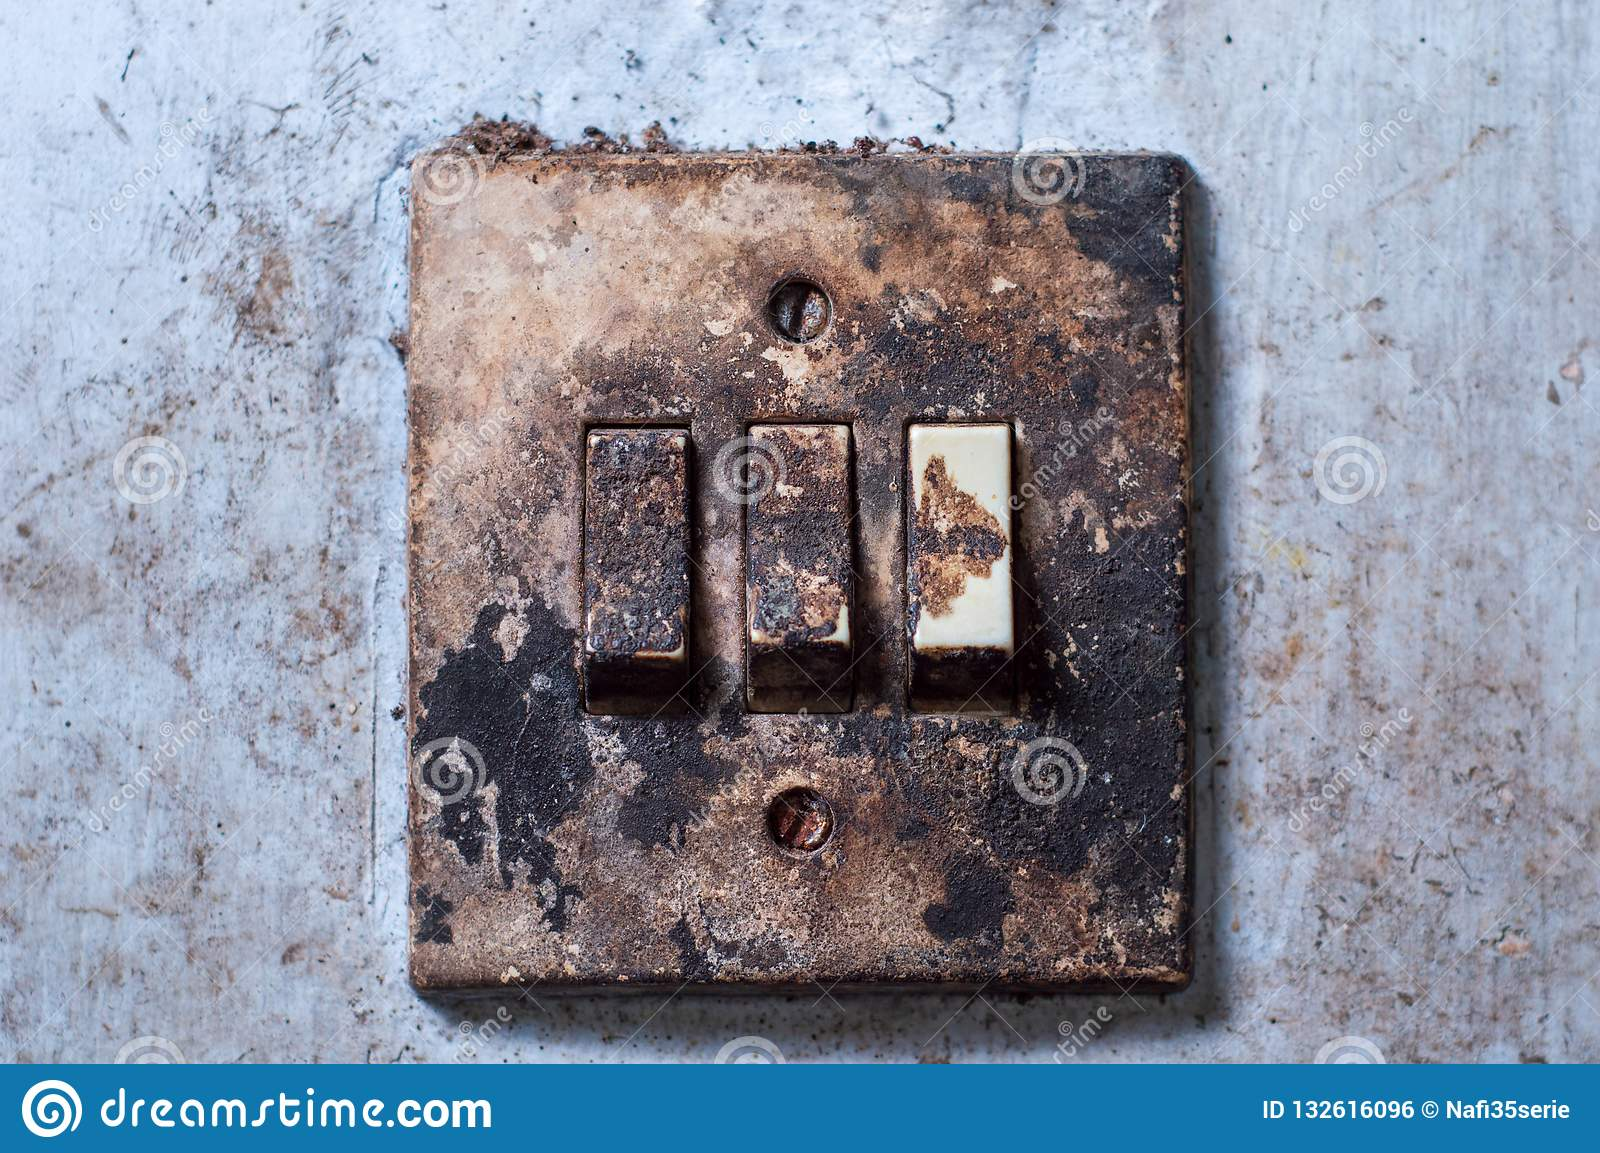 hight resolution of in electrical wiring a light switch is a switch most commonly used to operate electric lights permanently connected equipment or electrical outlets